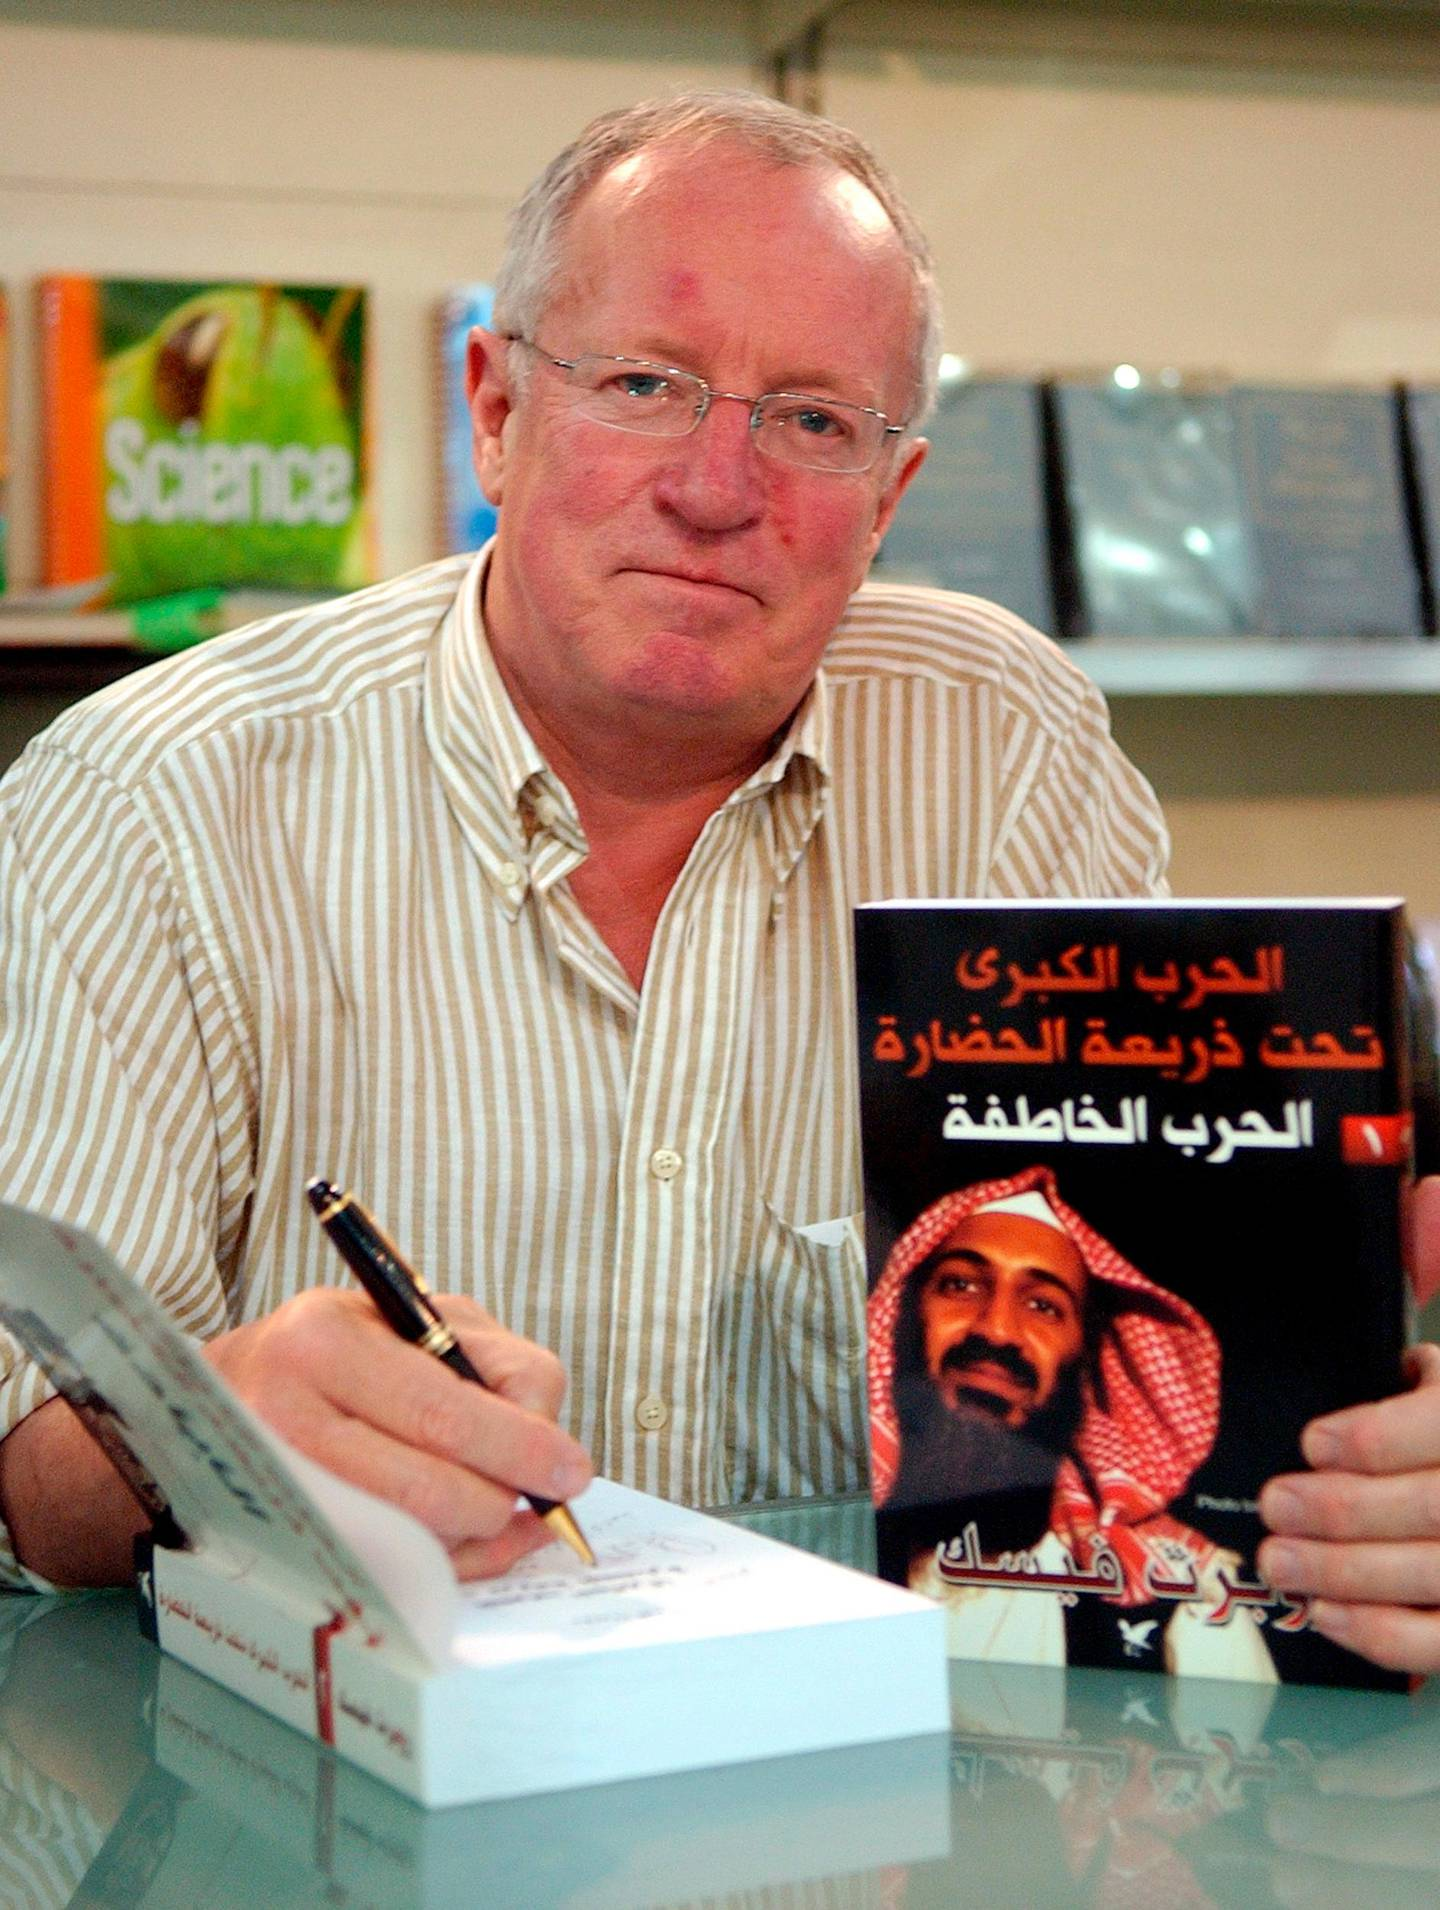 epa08792183 (FILE) - British Middle East news journalist, Robert Fisk, during signing the Arabic version of his new book 'The Great War for Civilisation: the Conquest of the Middle East', in the Arab Book Exhibition in Beirut, Lebanon, 21 April 2007 (Reissued 01 November 2020). According to news reports on 01 November 2020, British Middle East news journalist and author Robert Fisk, died at the age of 74.  EPA/WAEL HAMZEH